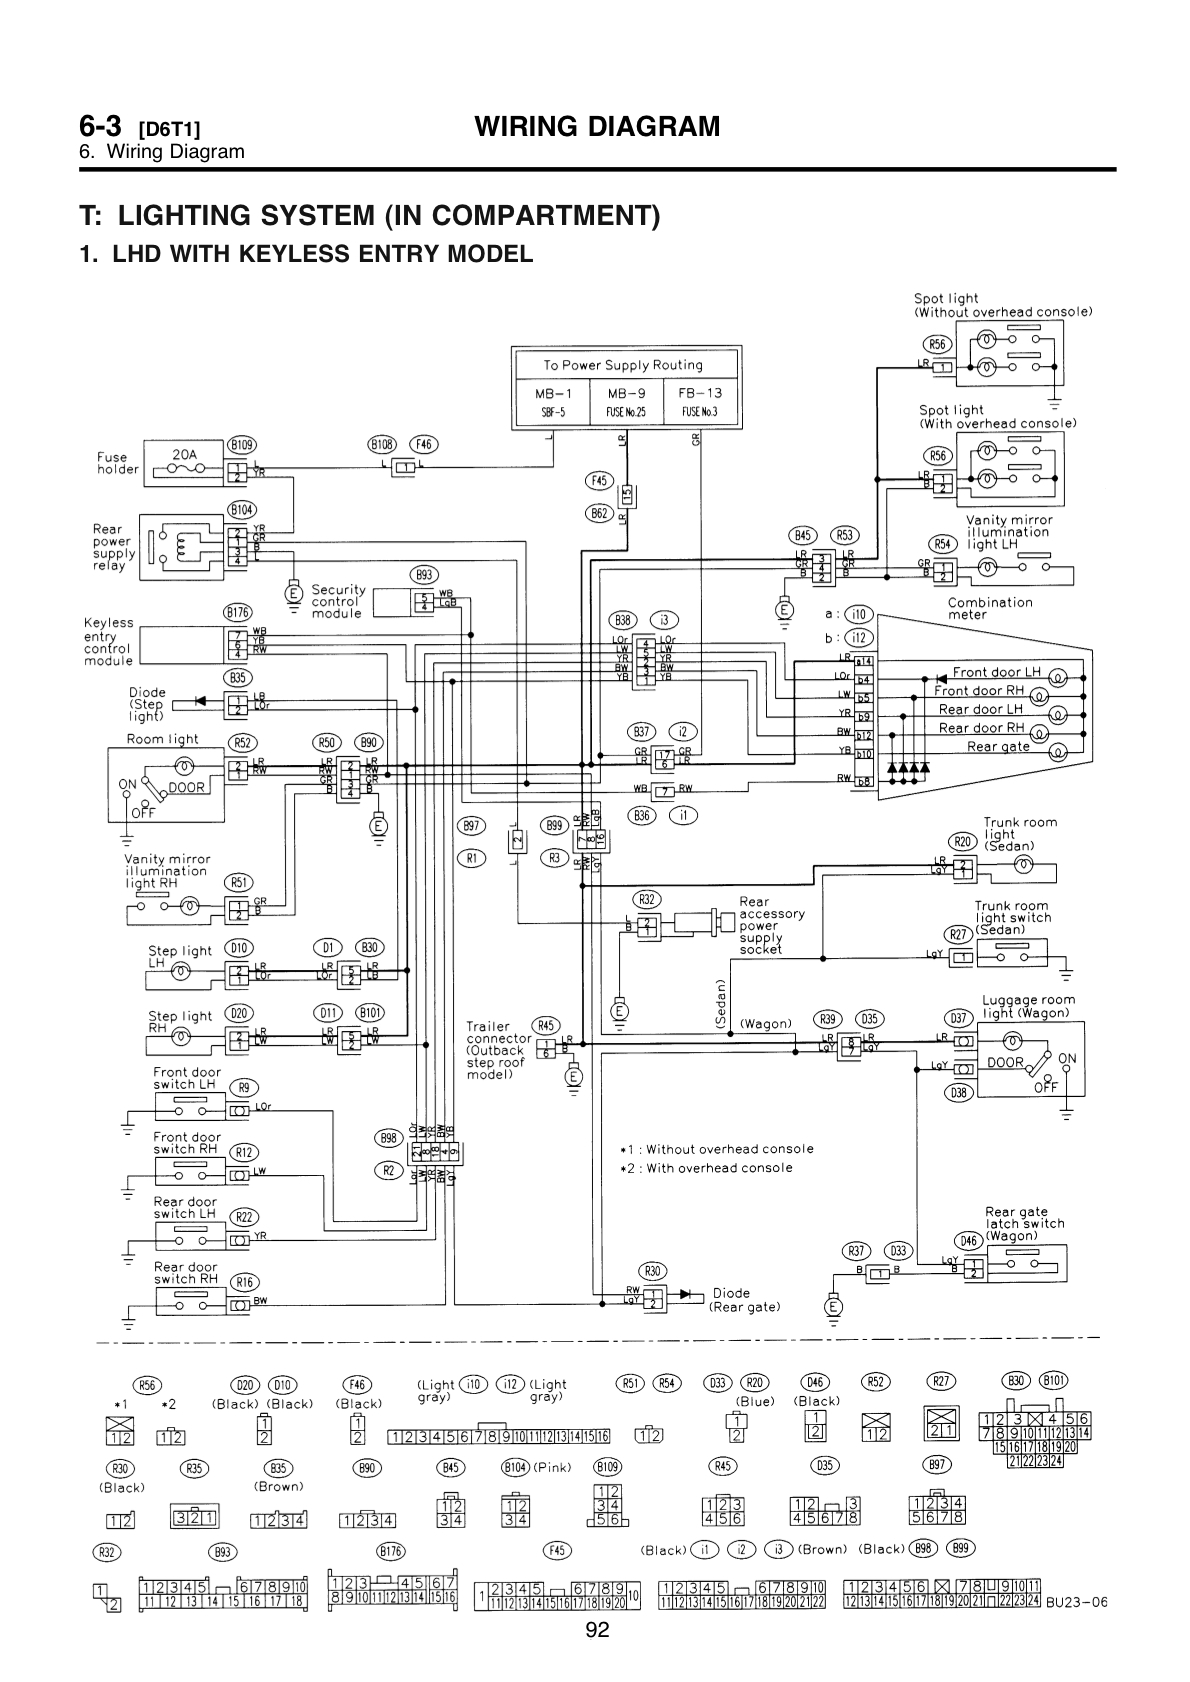 hight resolution of 2003 subaru outback rear defrost wiring diagram wiring diagrams 2003 subaru outback brochure 2003 subaru outback rear defrost wiring diagram